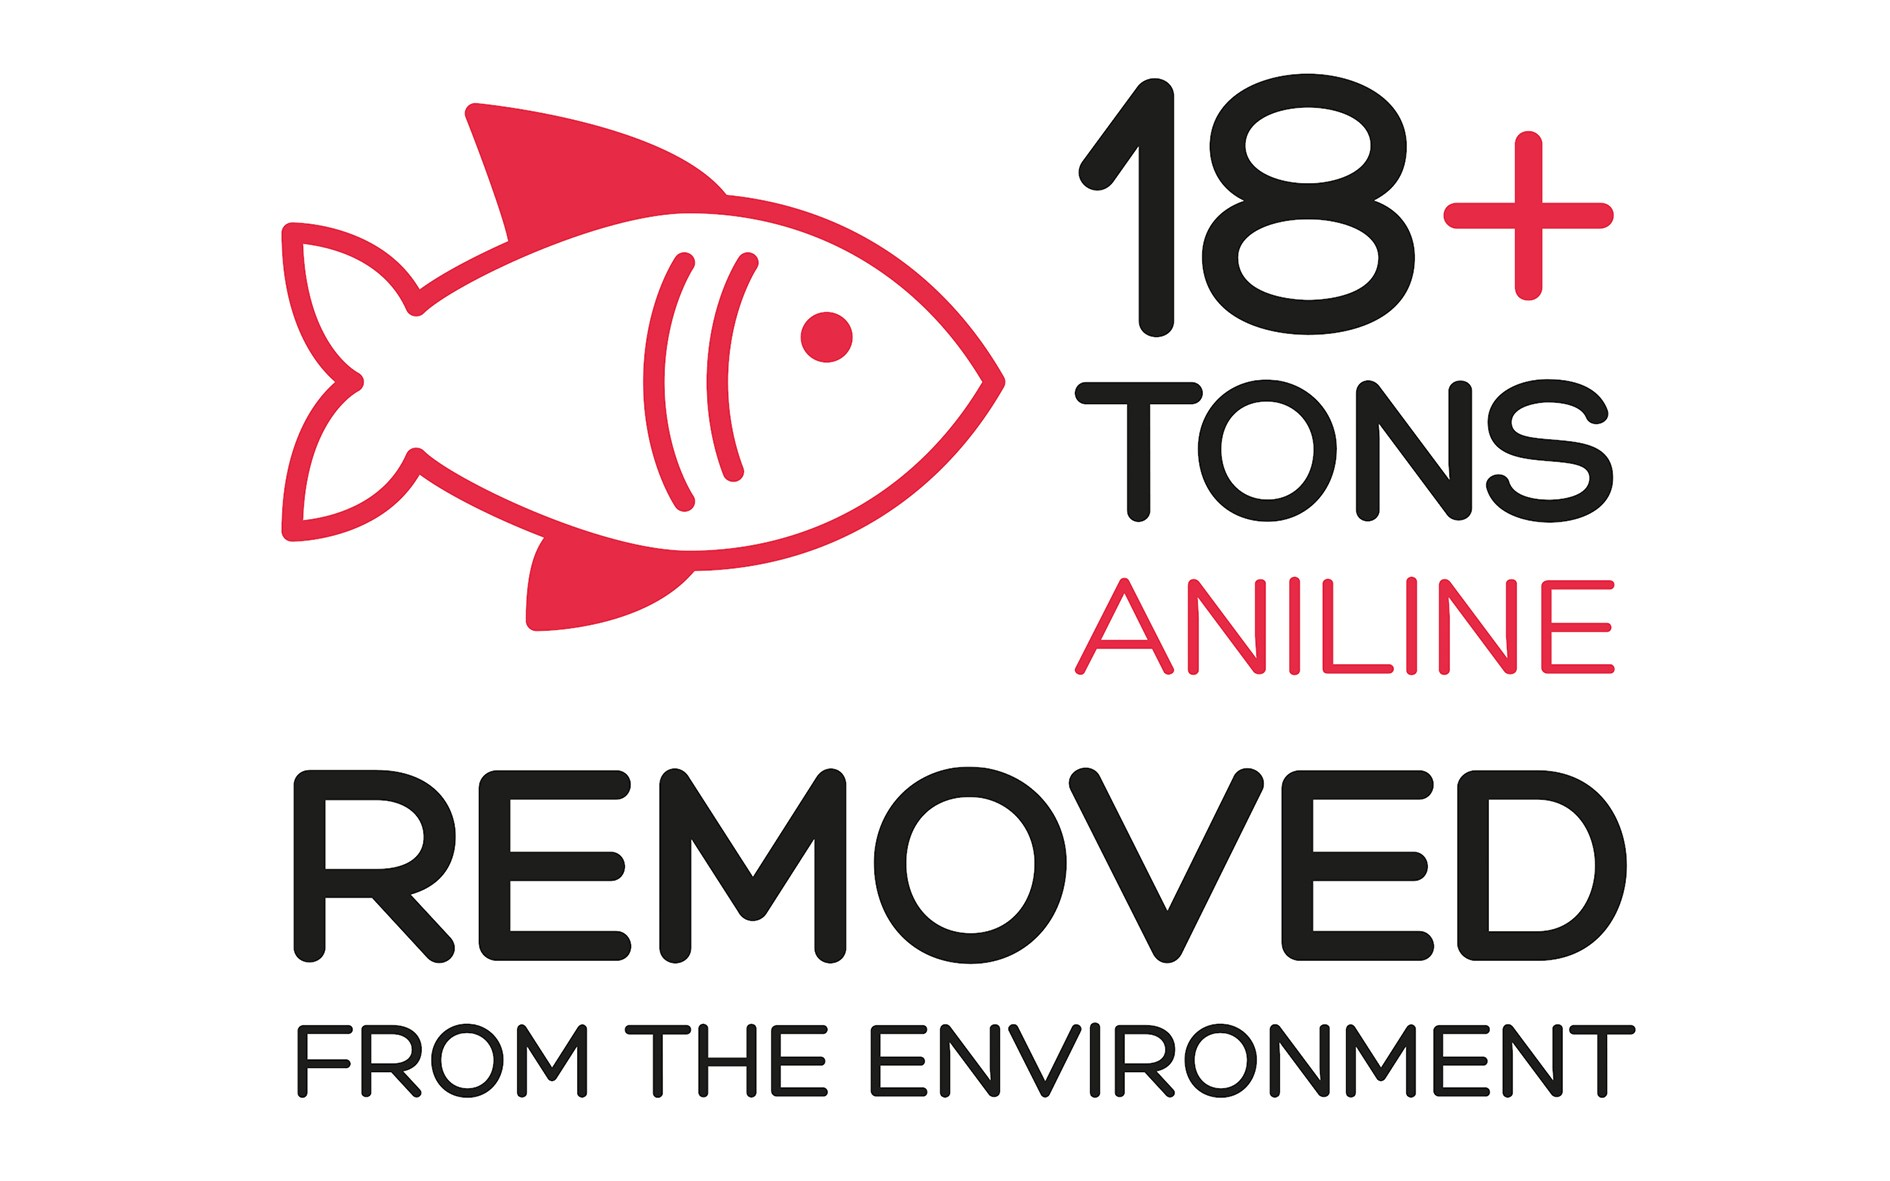 Archroma, a global leader in specialty chemicals towards sustainable solutions, celebrates nearly 3 years of successfully converting the denim industry to aniline-free(1) pre-reduced liquid indigo.